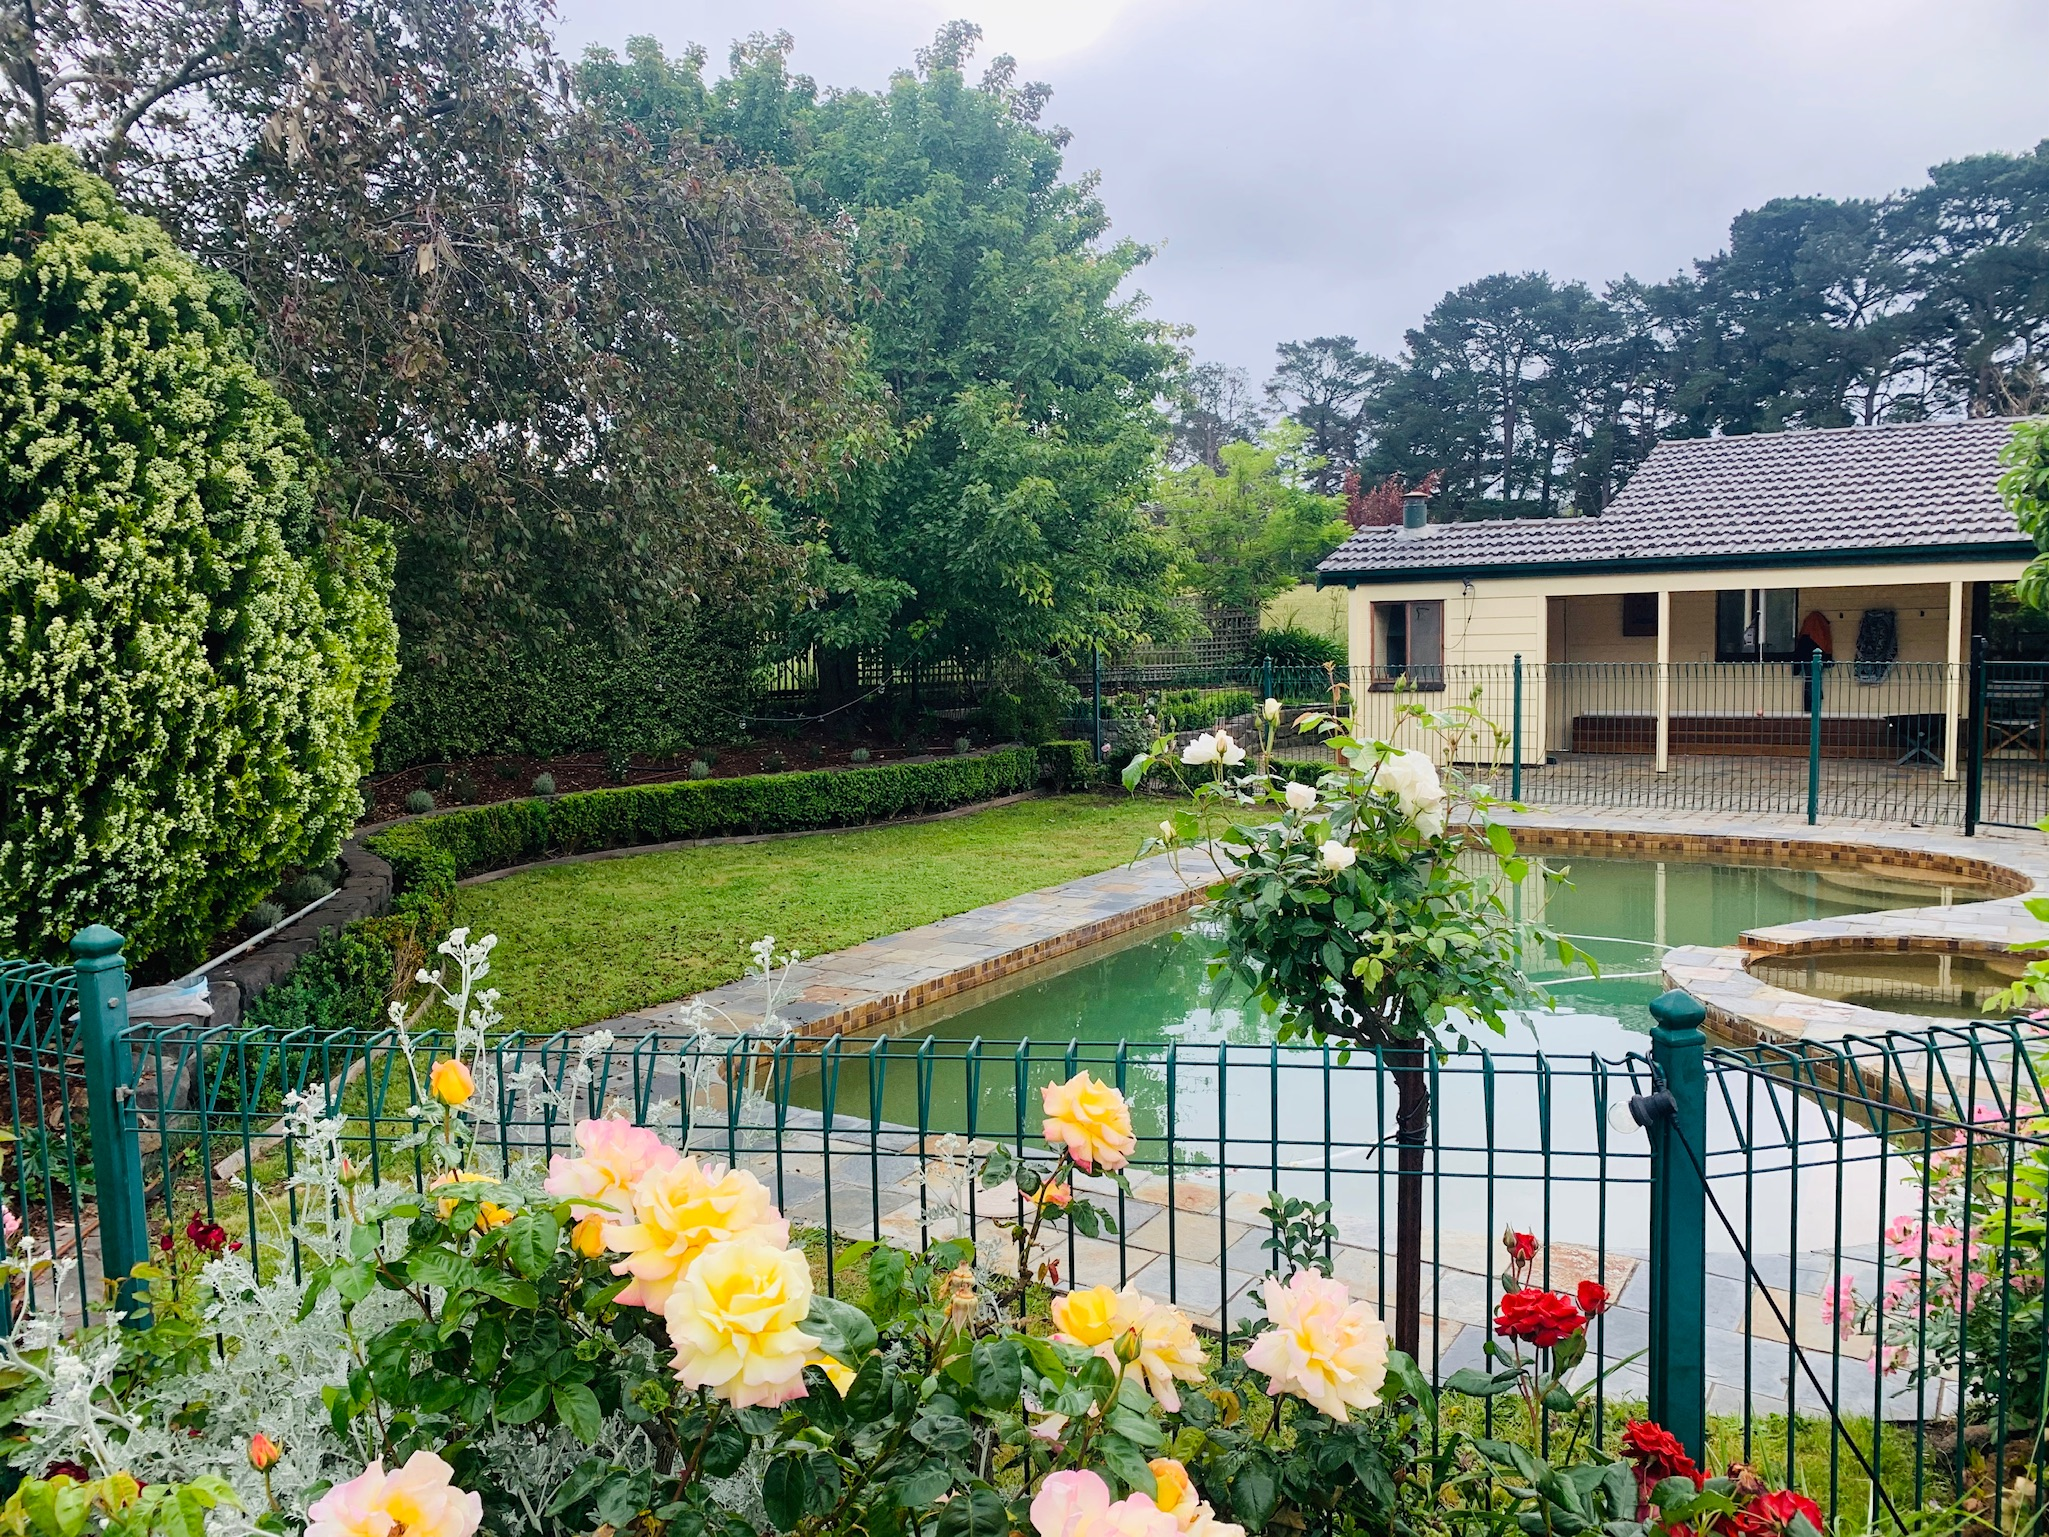 Pool with rose garden in foreground. Adalong Park, holiday rental Moorooduc.